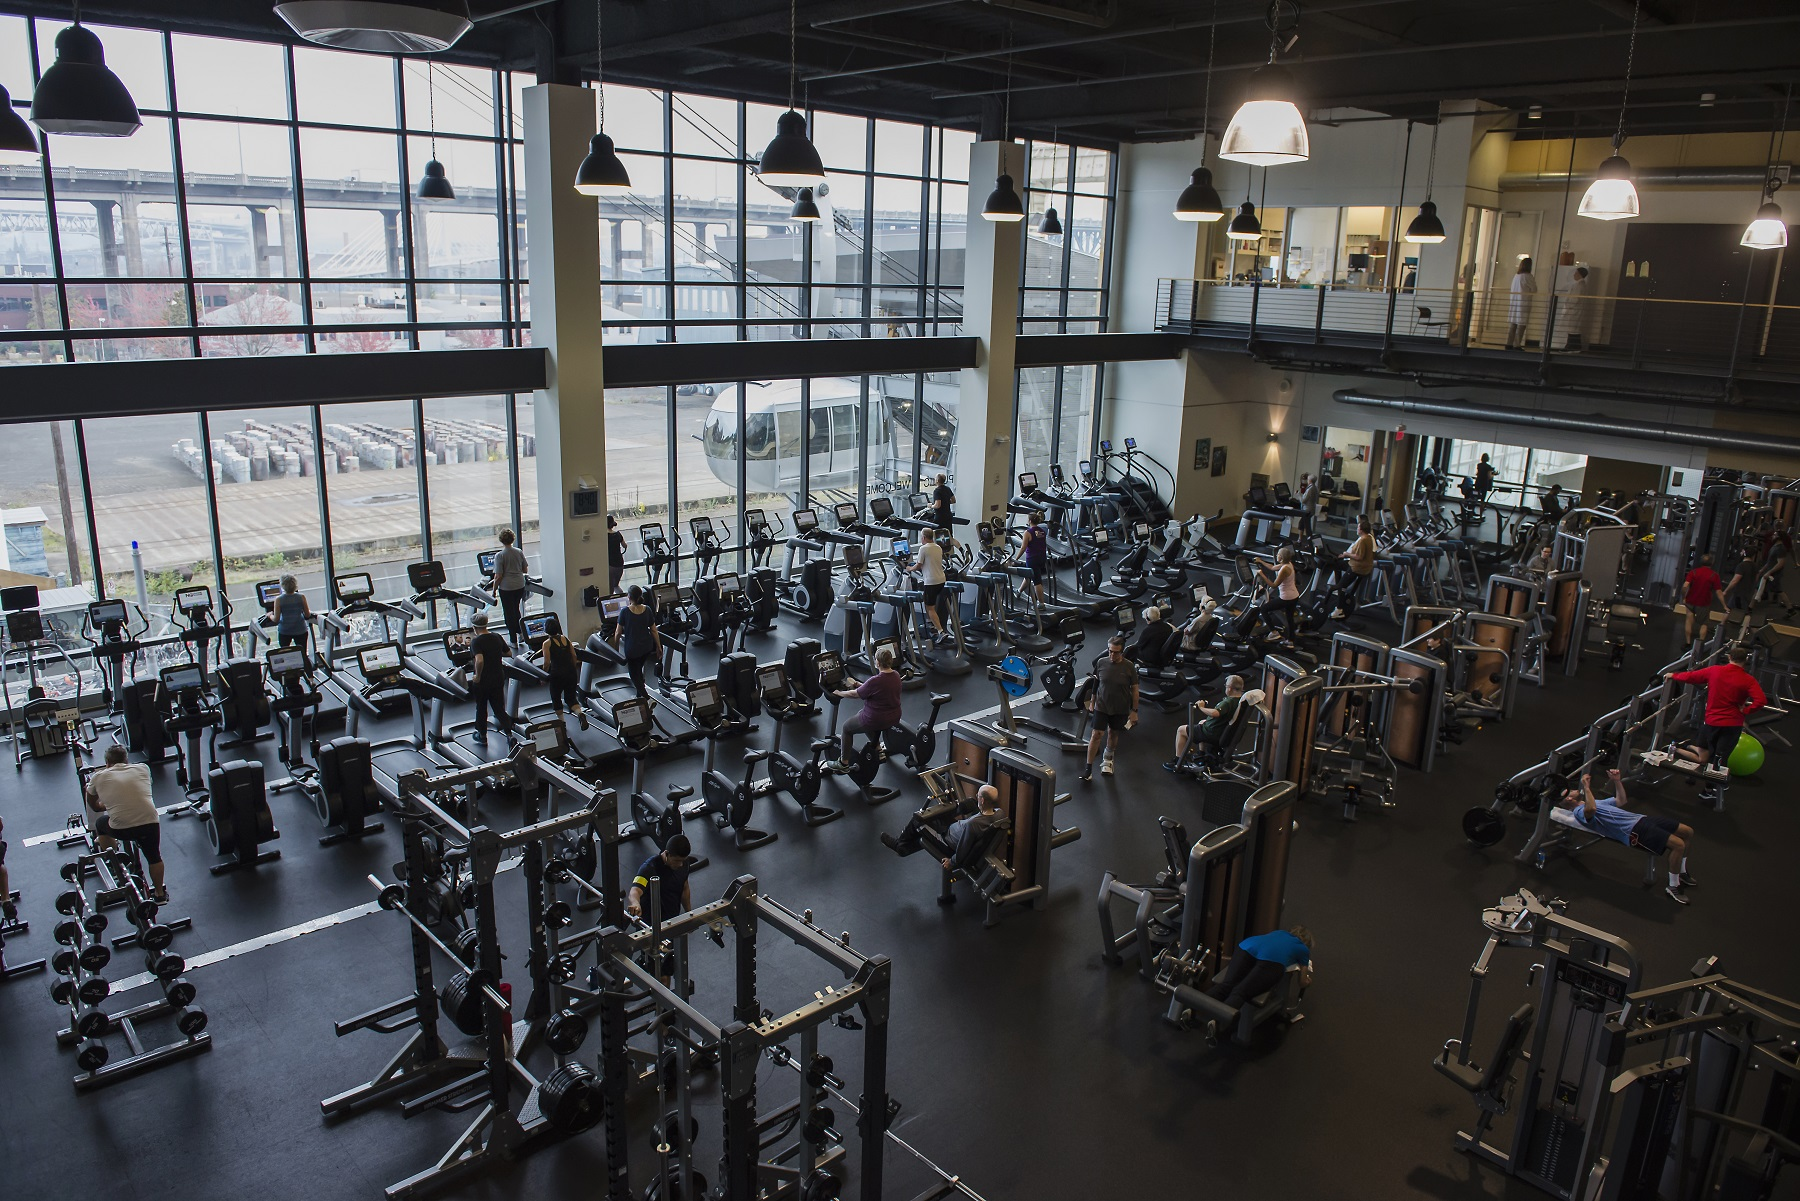 Wide view of fitness floor showing cardiovascular and strength equipment.